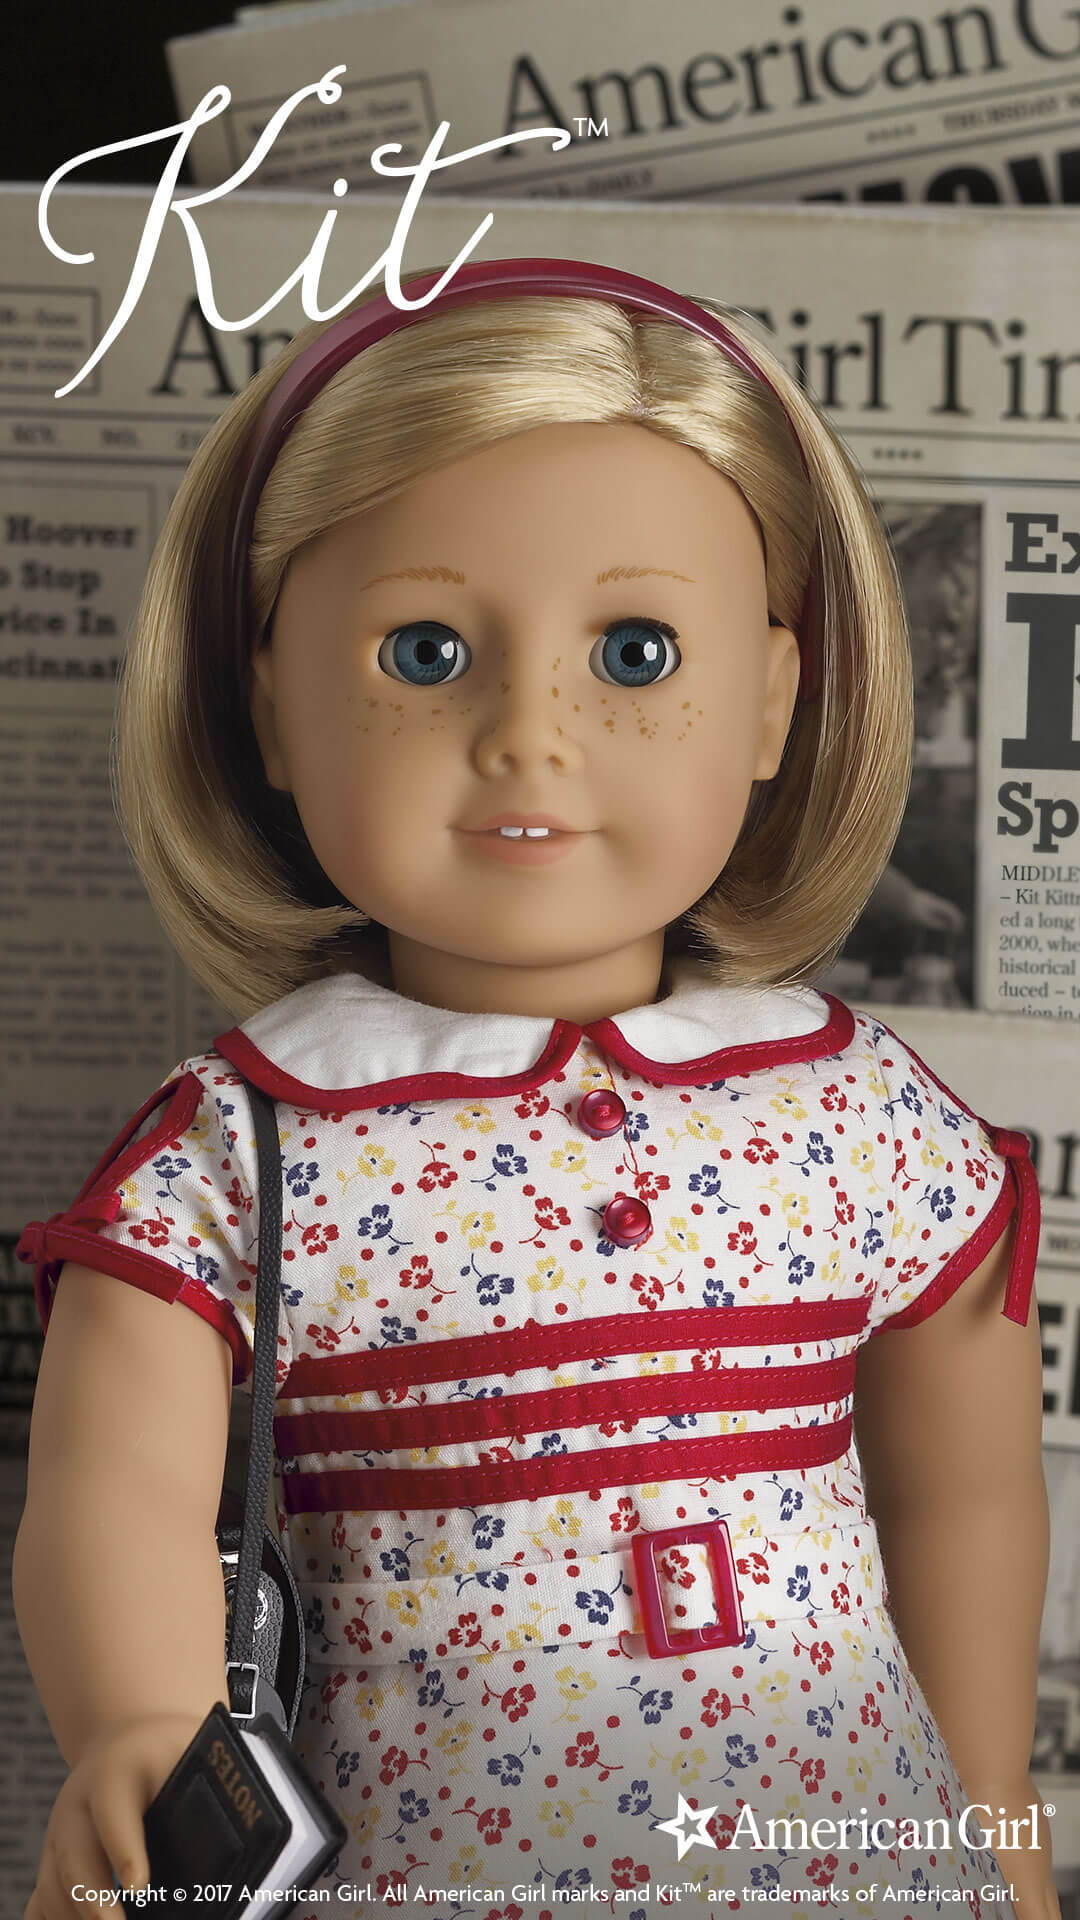 Dolls - Commitment to racial equality | American Girl